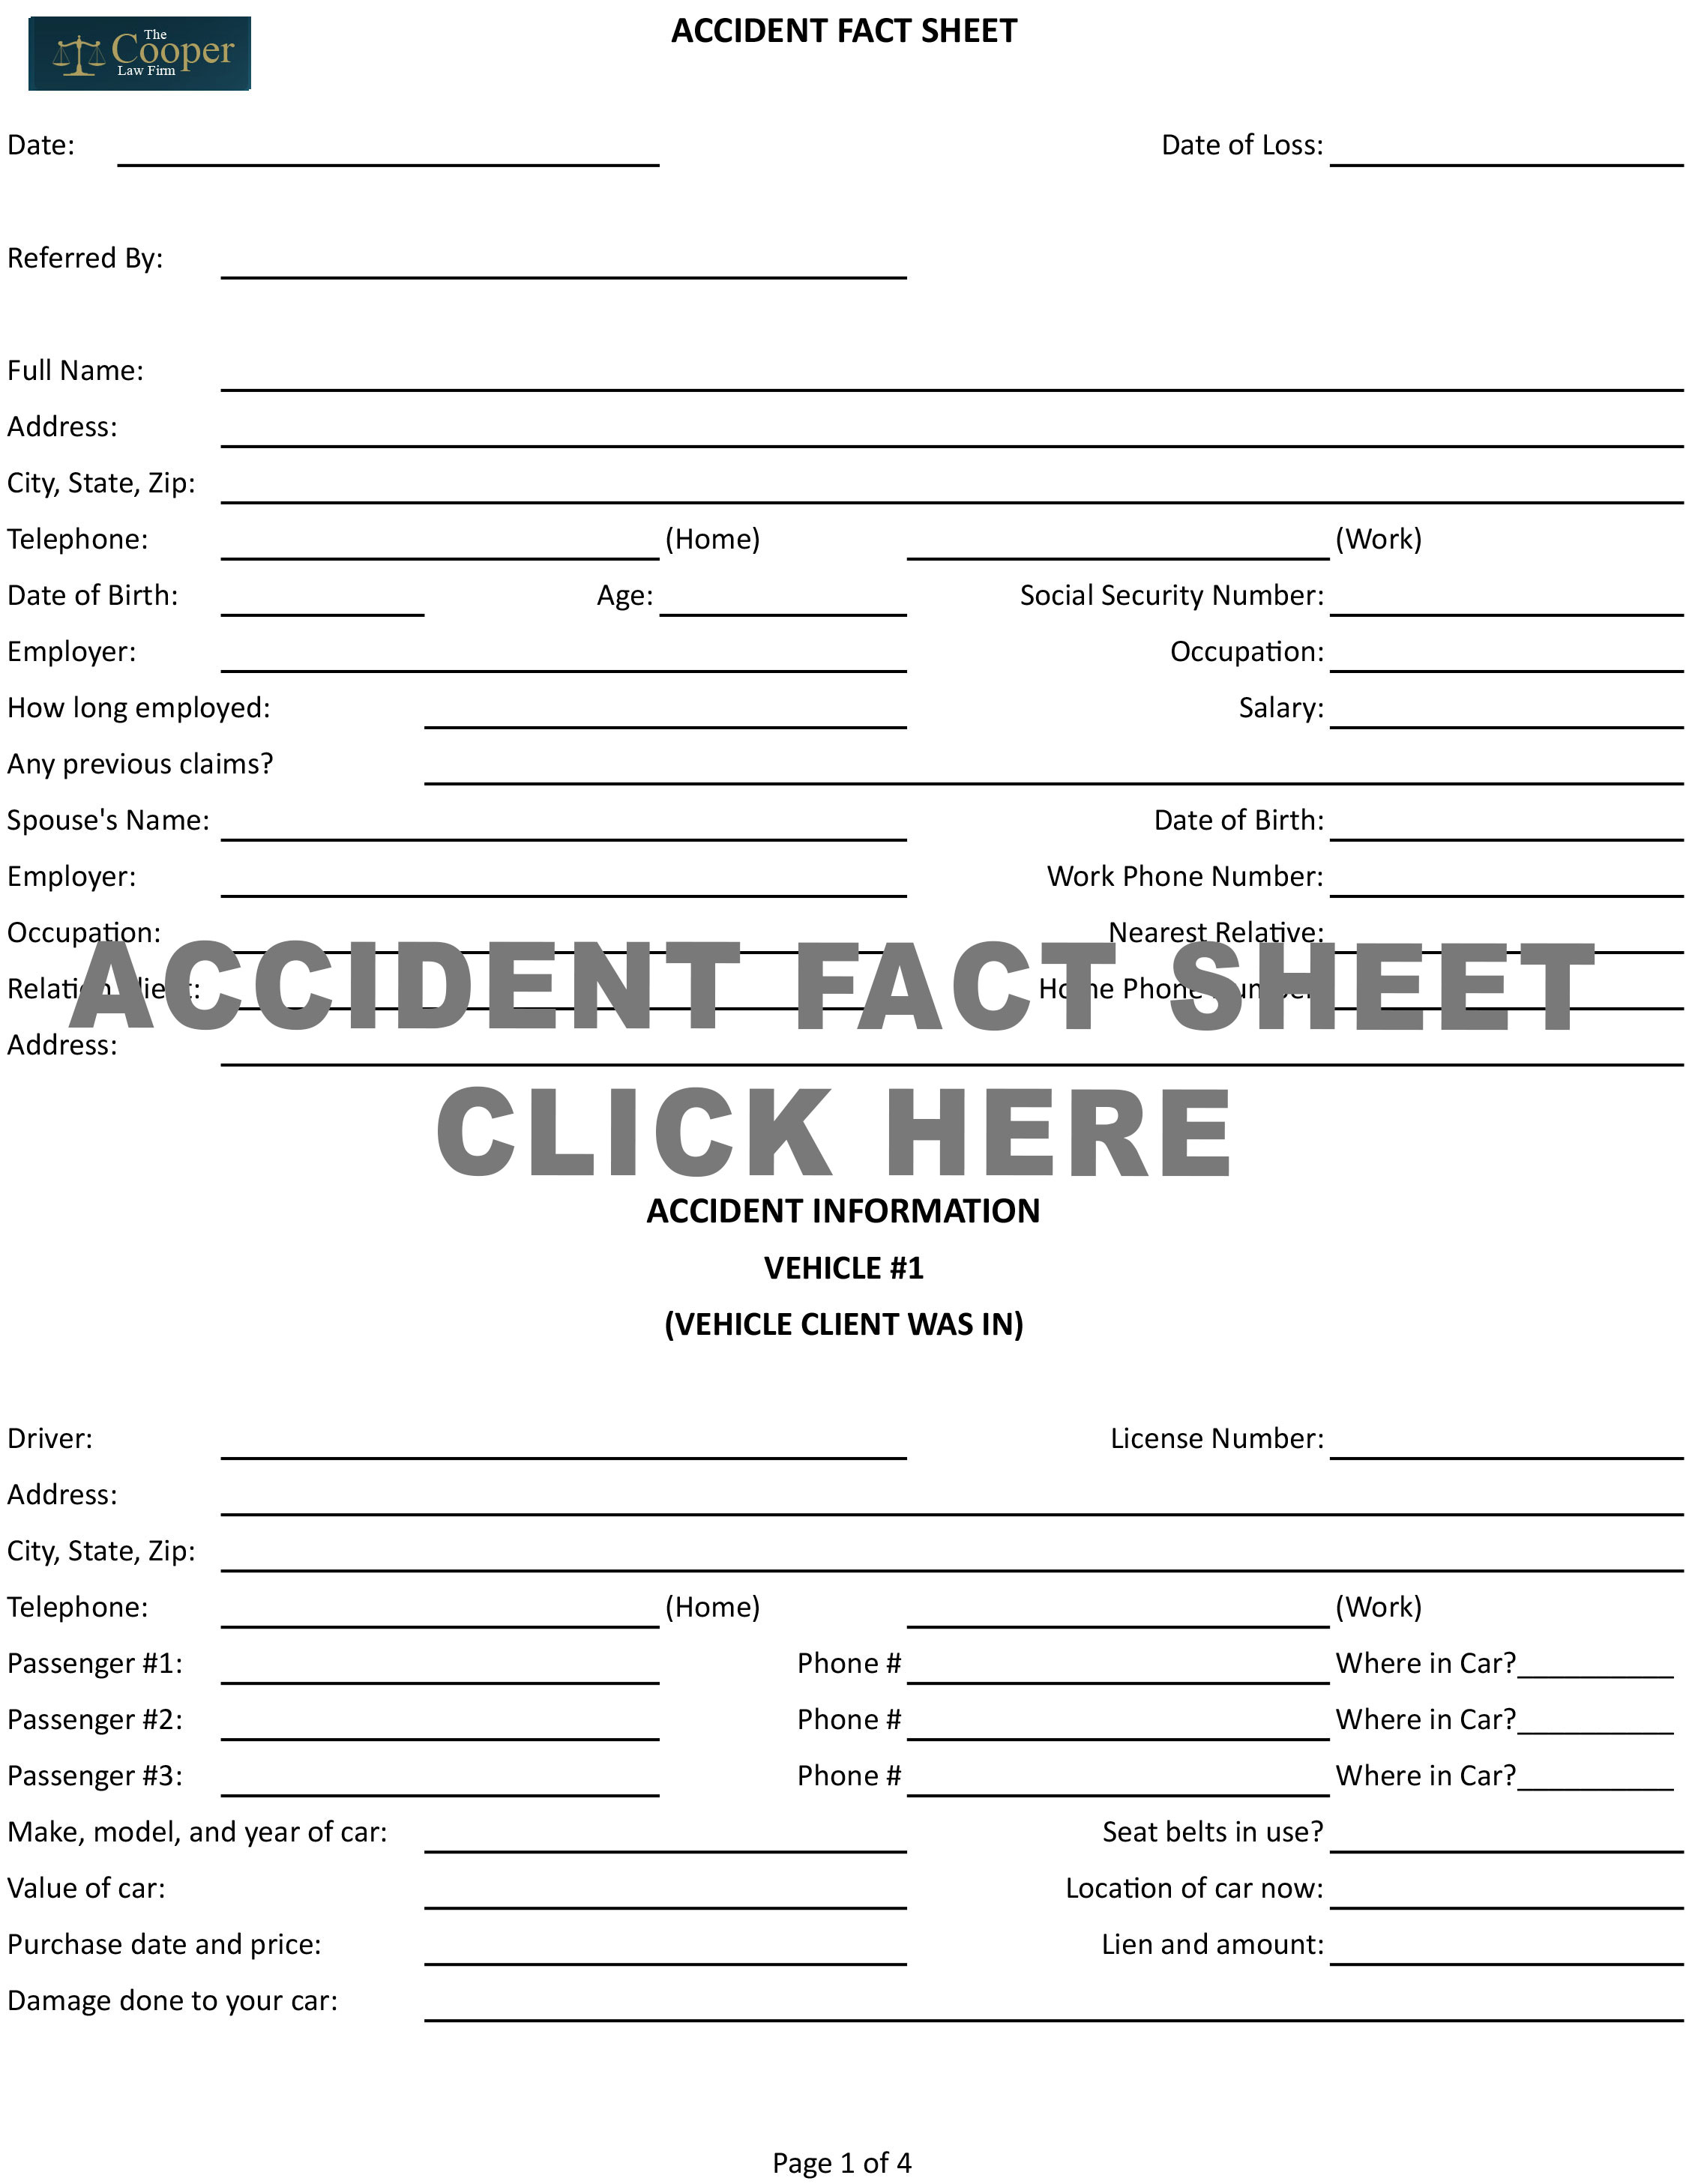 Accident Fact Sheet